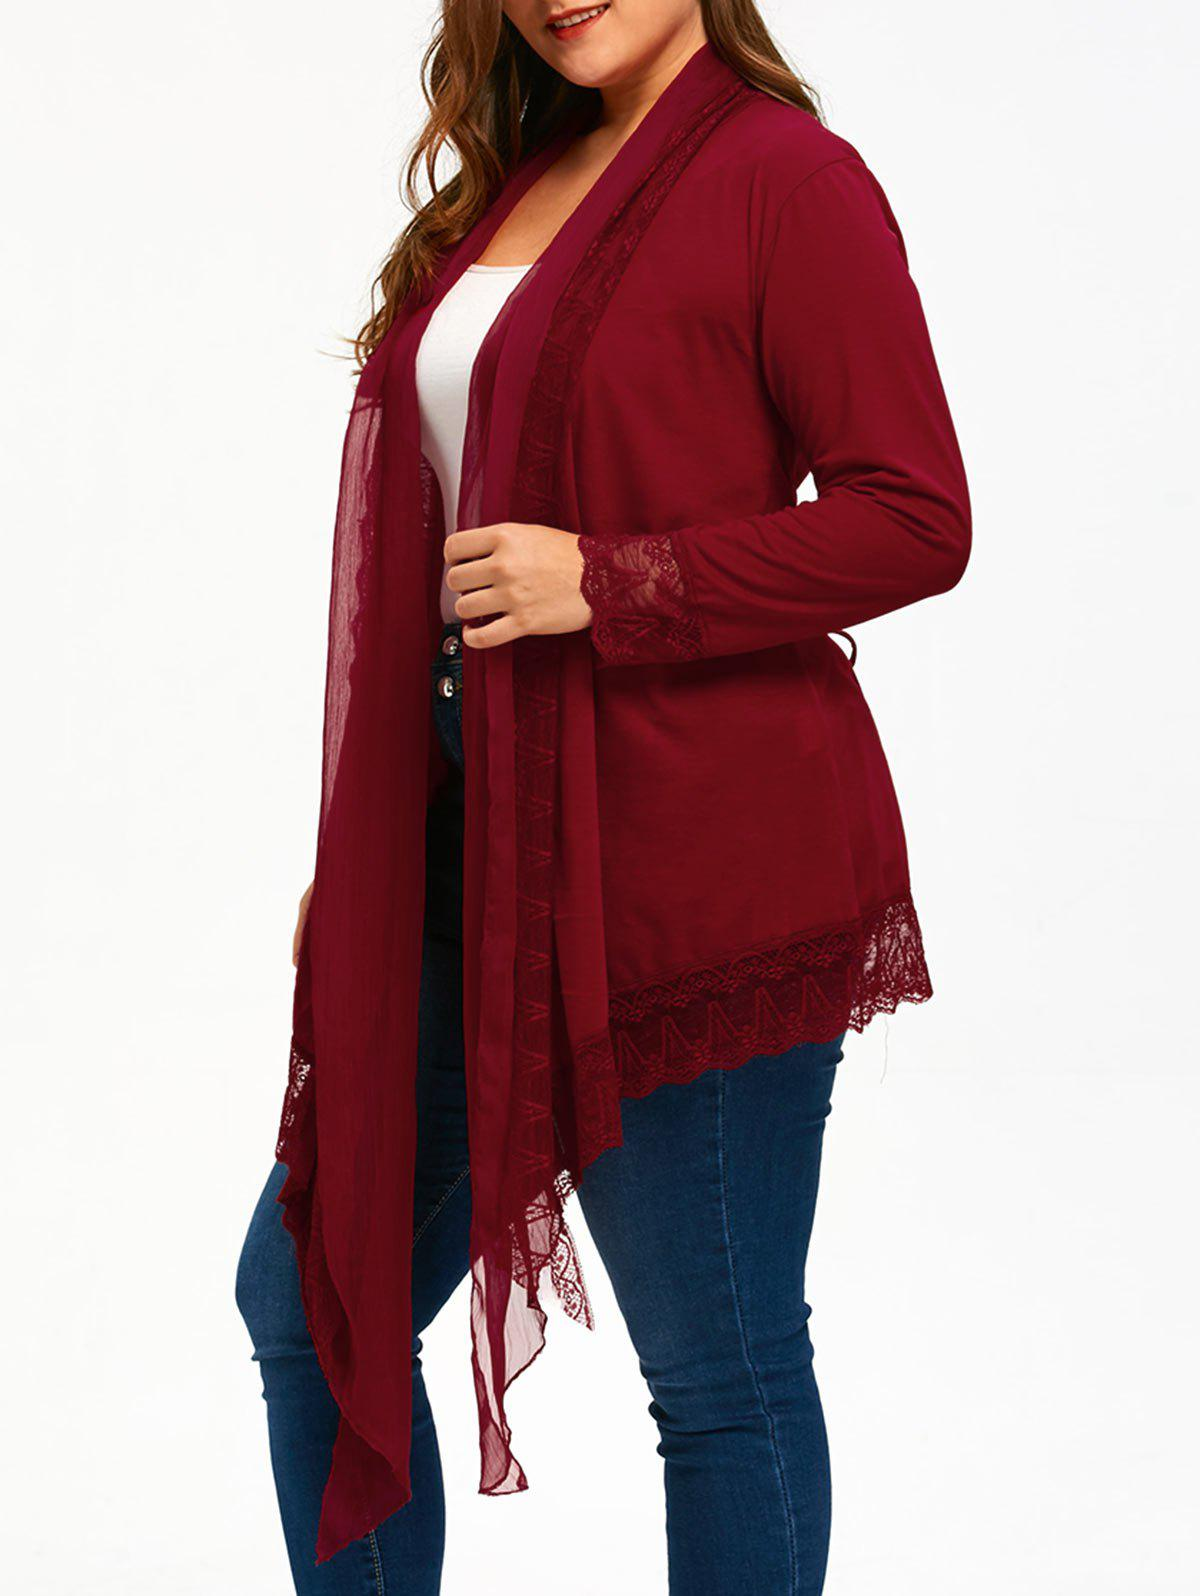 Lace Trim Plus Size Criss Cross Cardigan - WINE RED 3XL